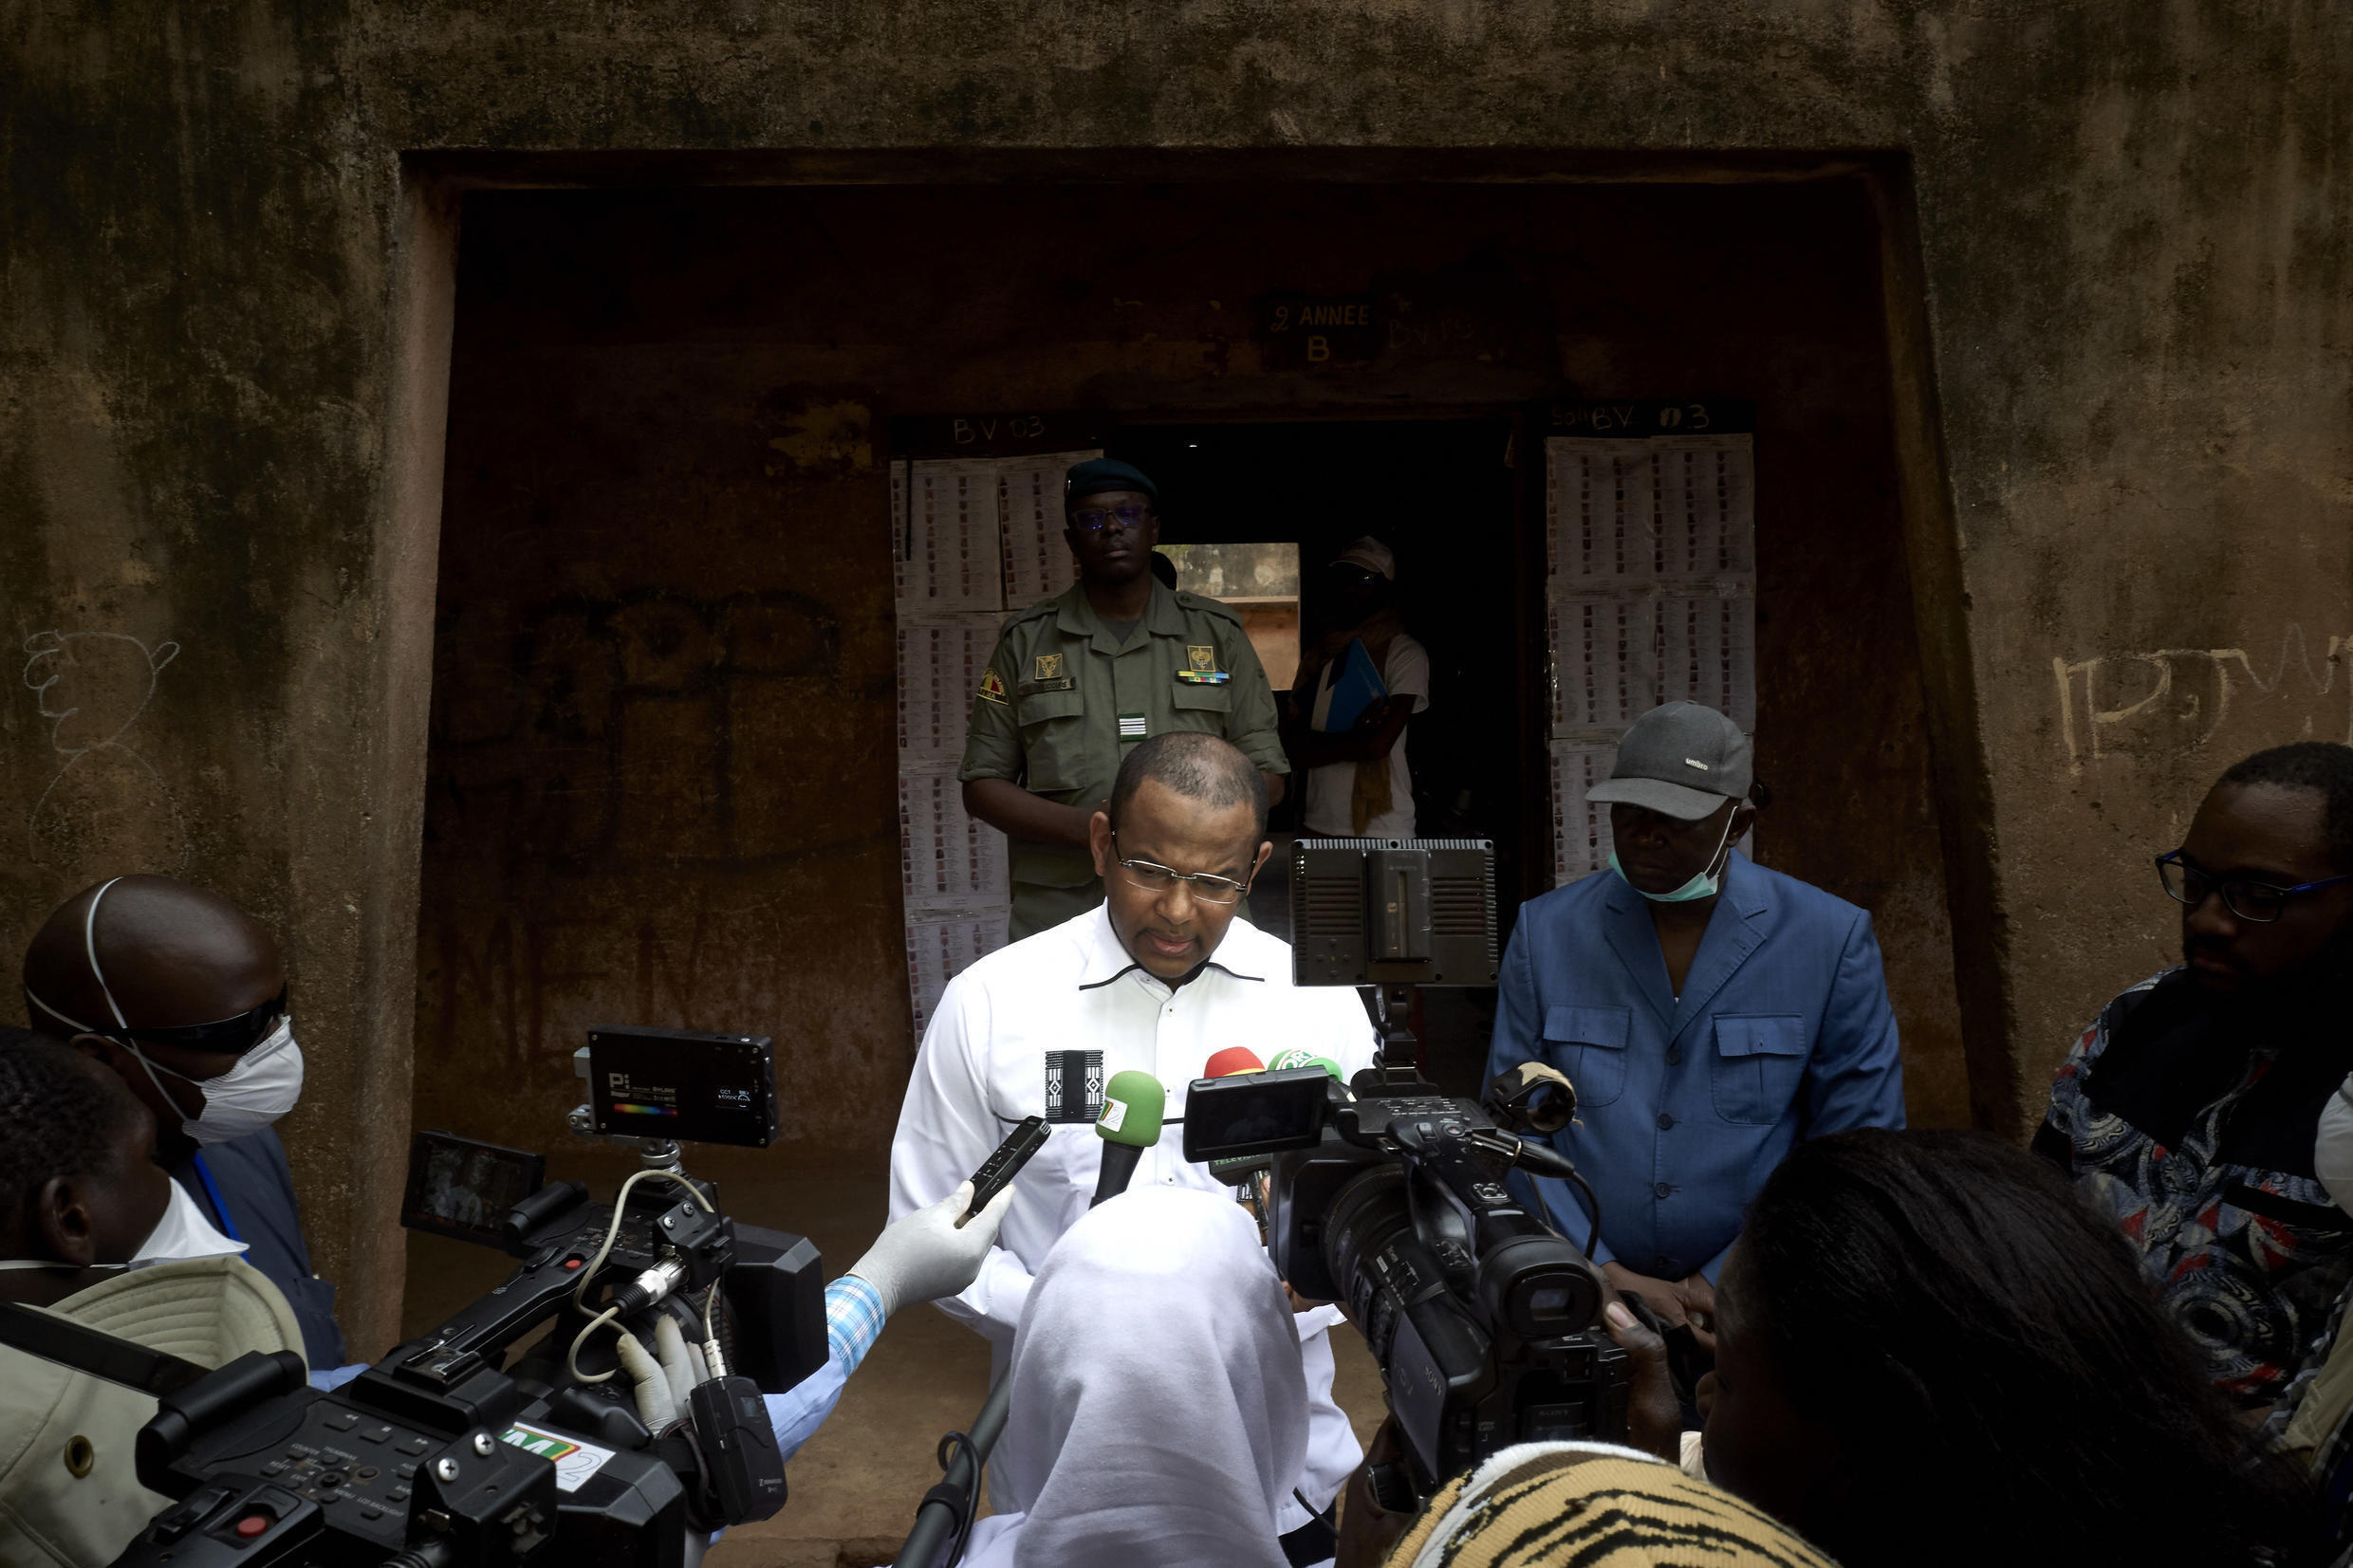 Malian Prime Minister Boubou Cisse addresses the media after casting his ballot for the parliamentary elections in Bamako on March 29, 2020.